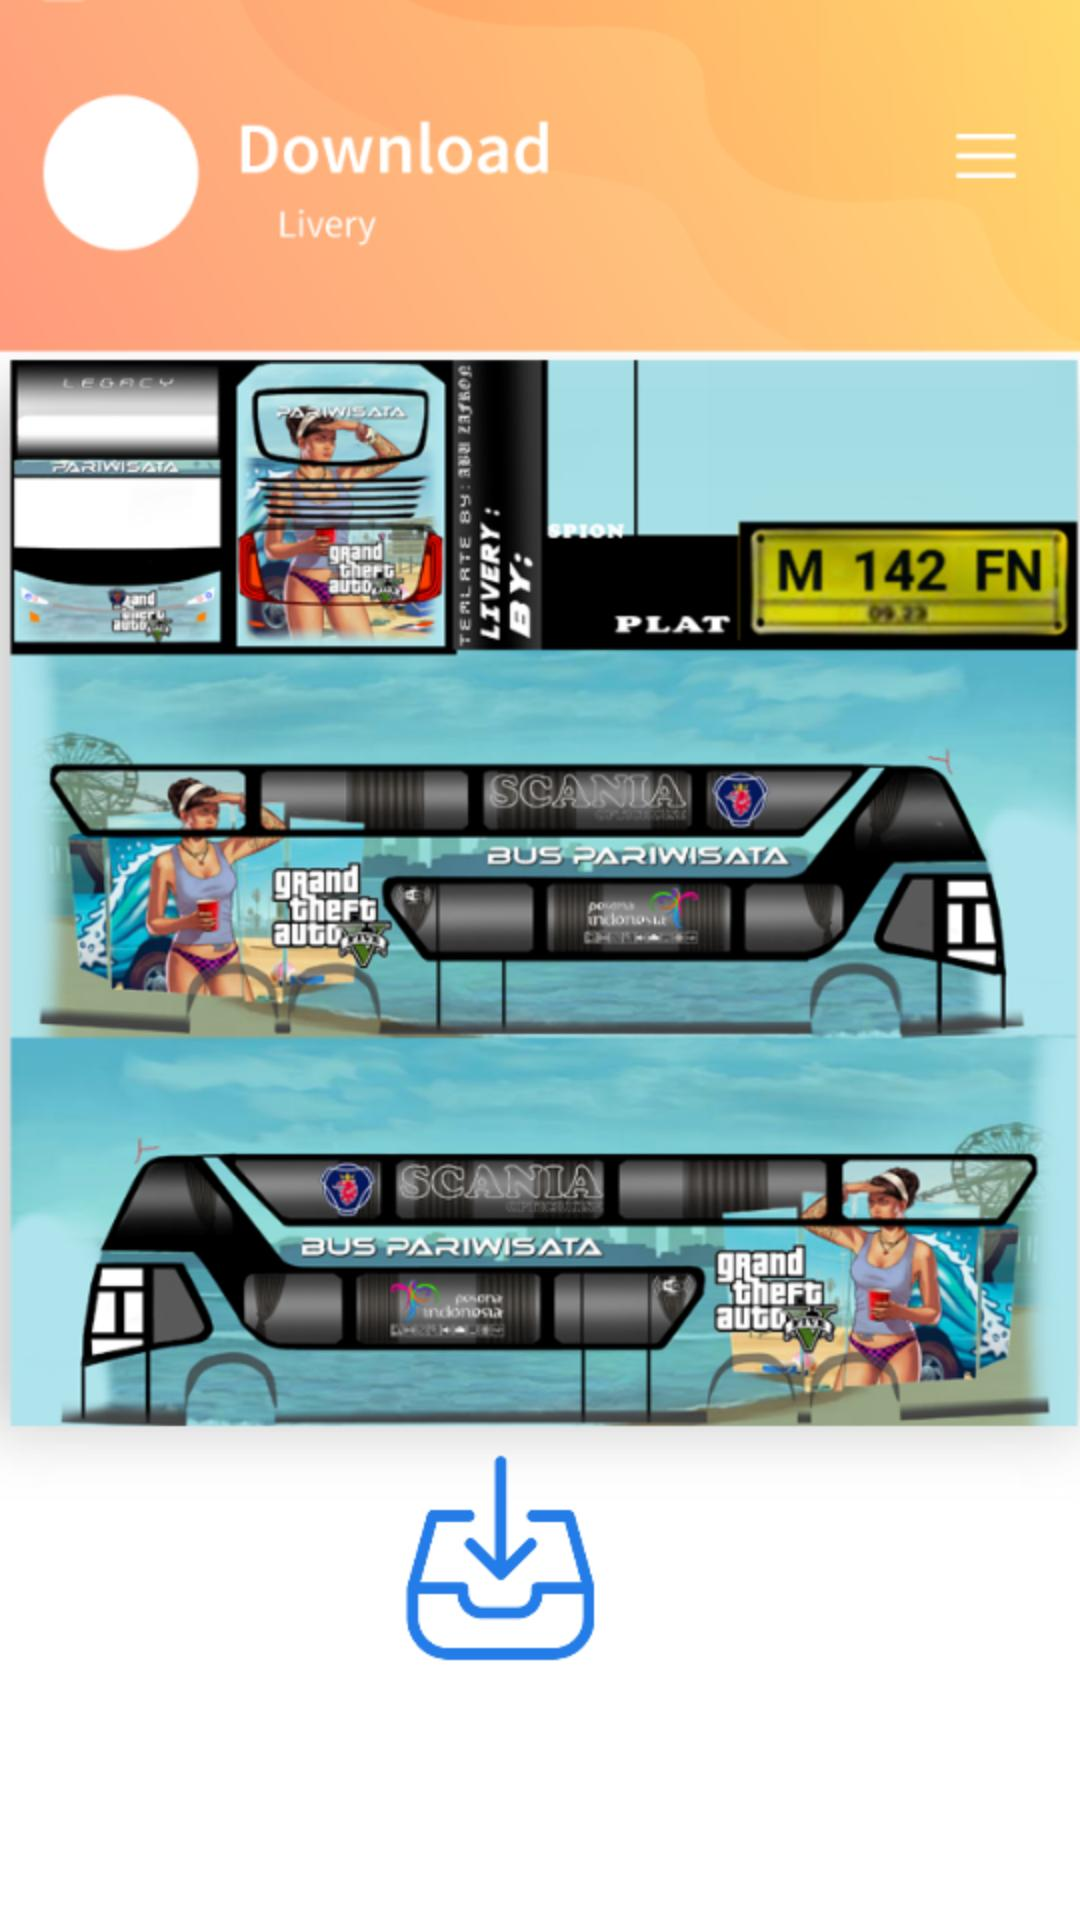 Livery Bus Medan Jaya Shd For Android Apk Download